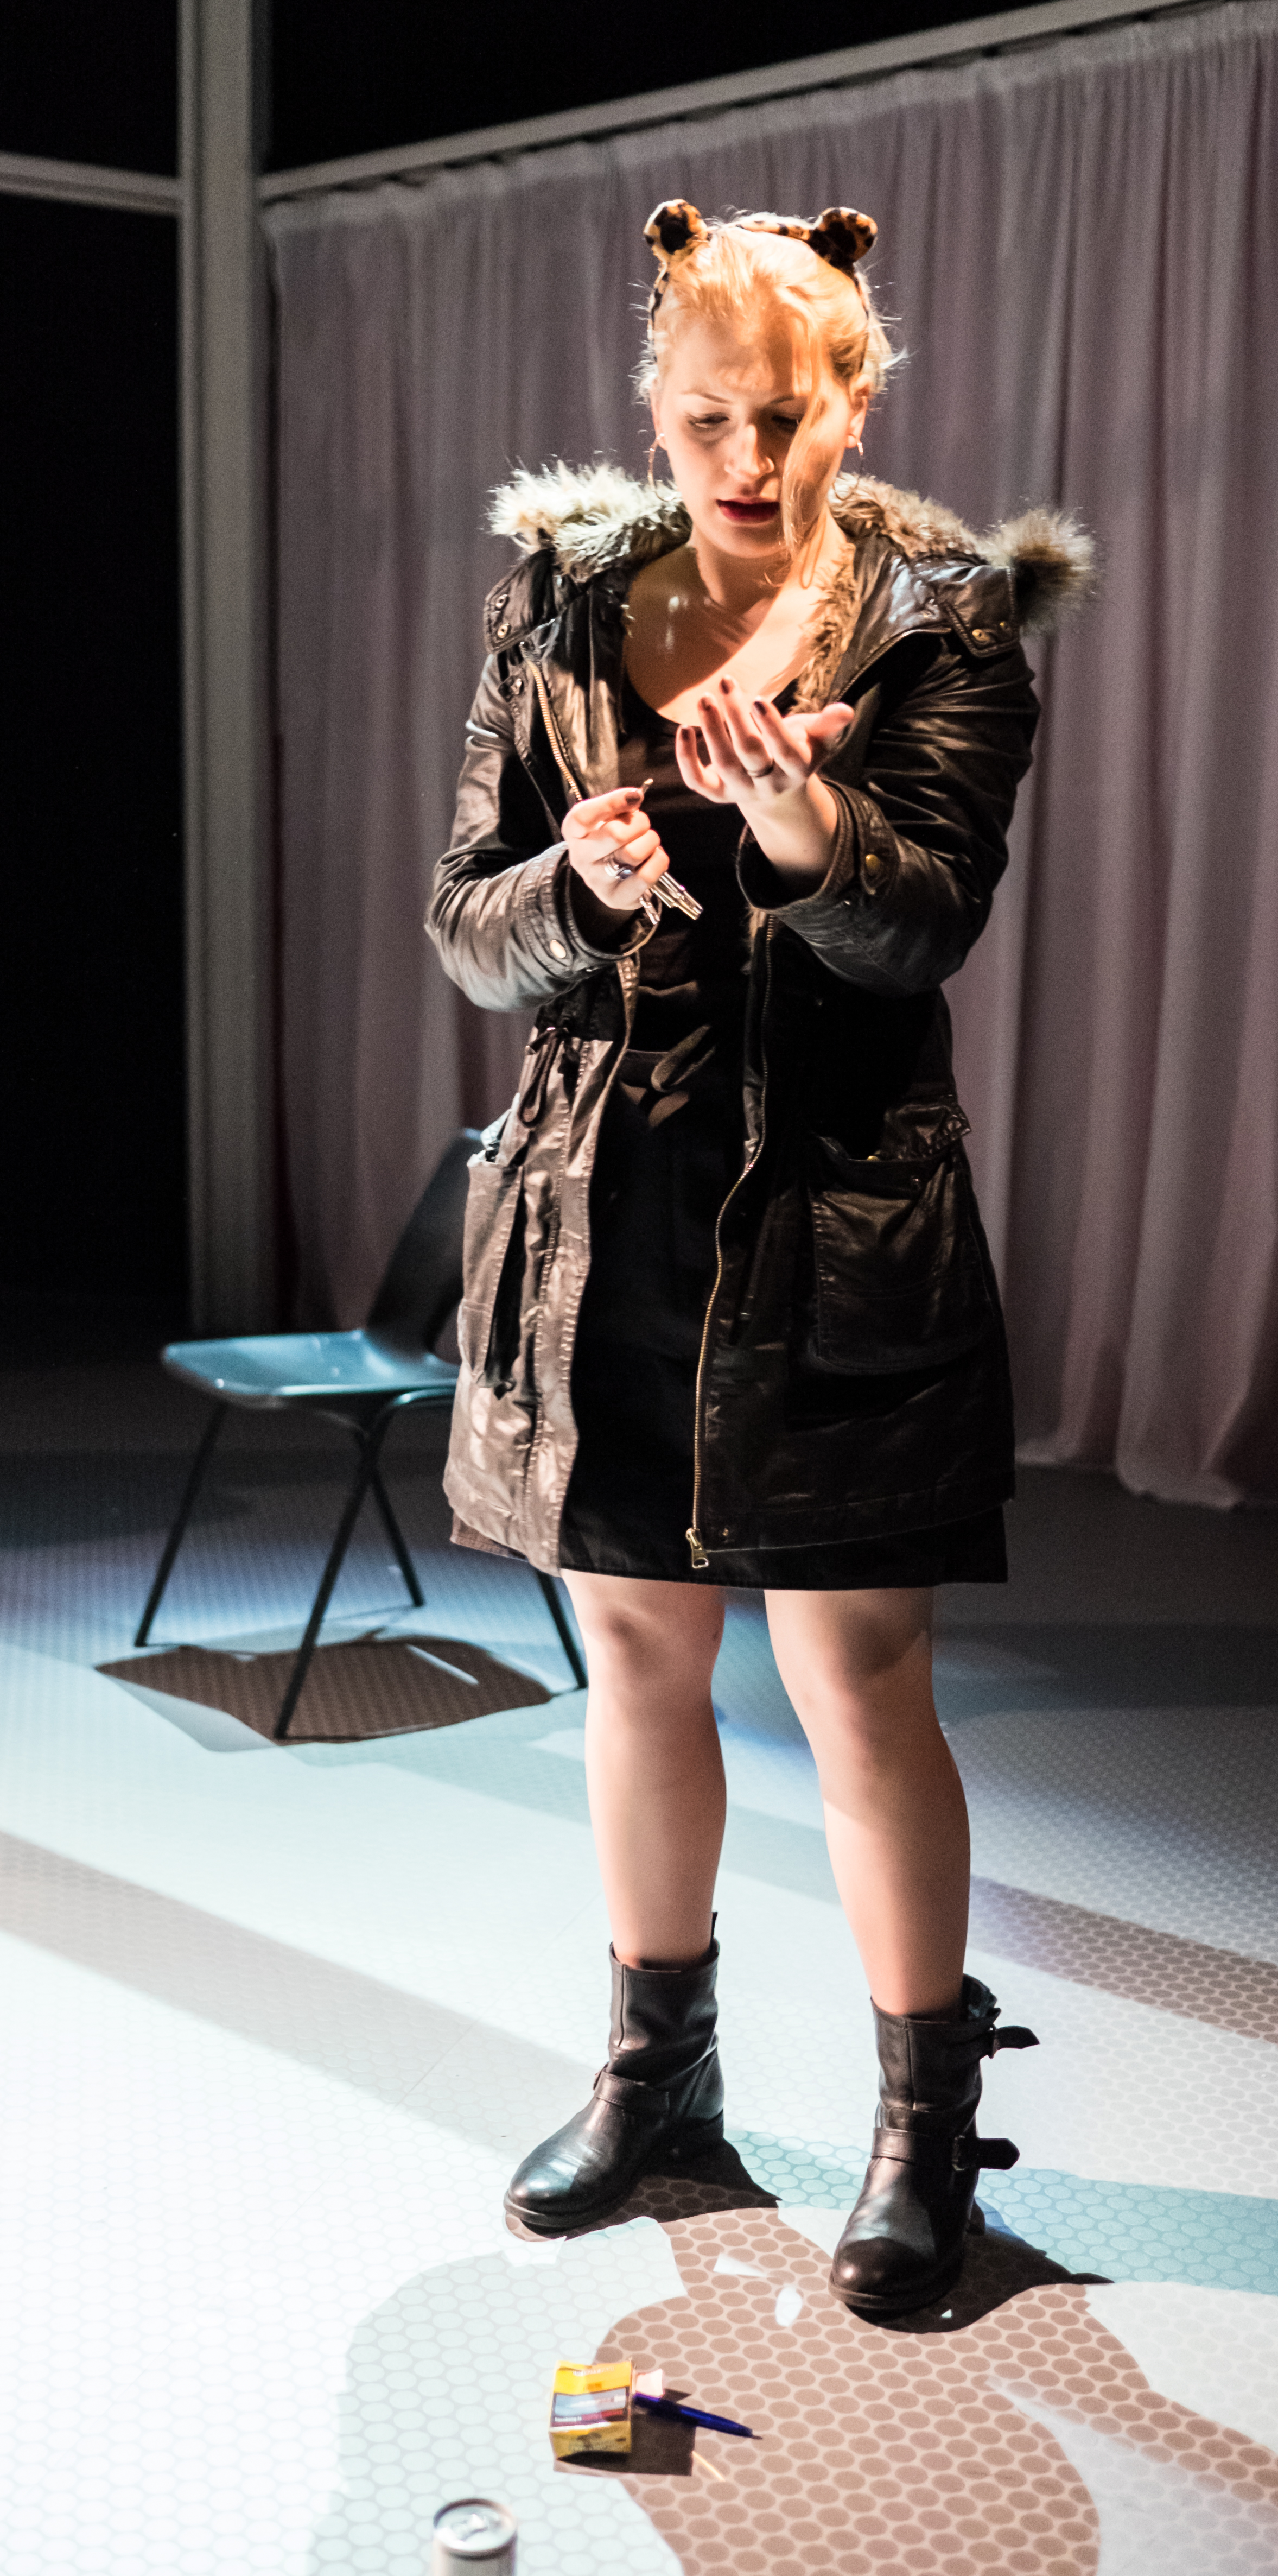 Laura Hanna in PALINDROME (Miniaturists 50 - Arcola 2015) Photo by John Wilson